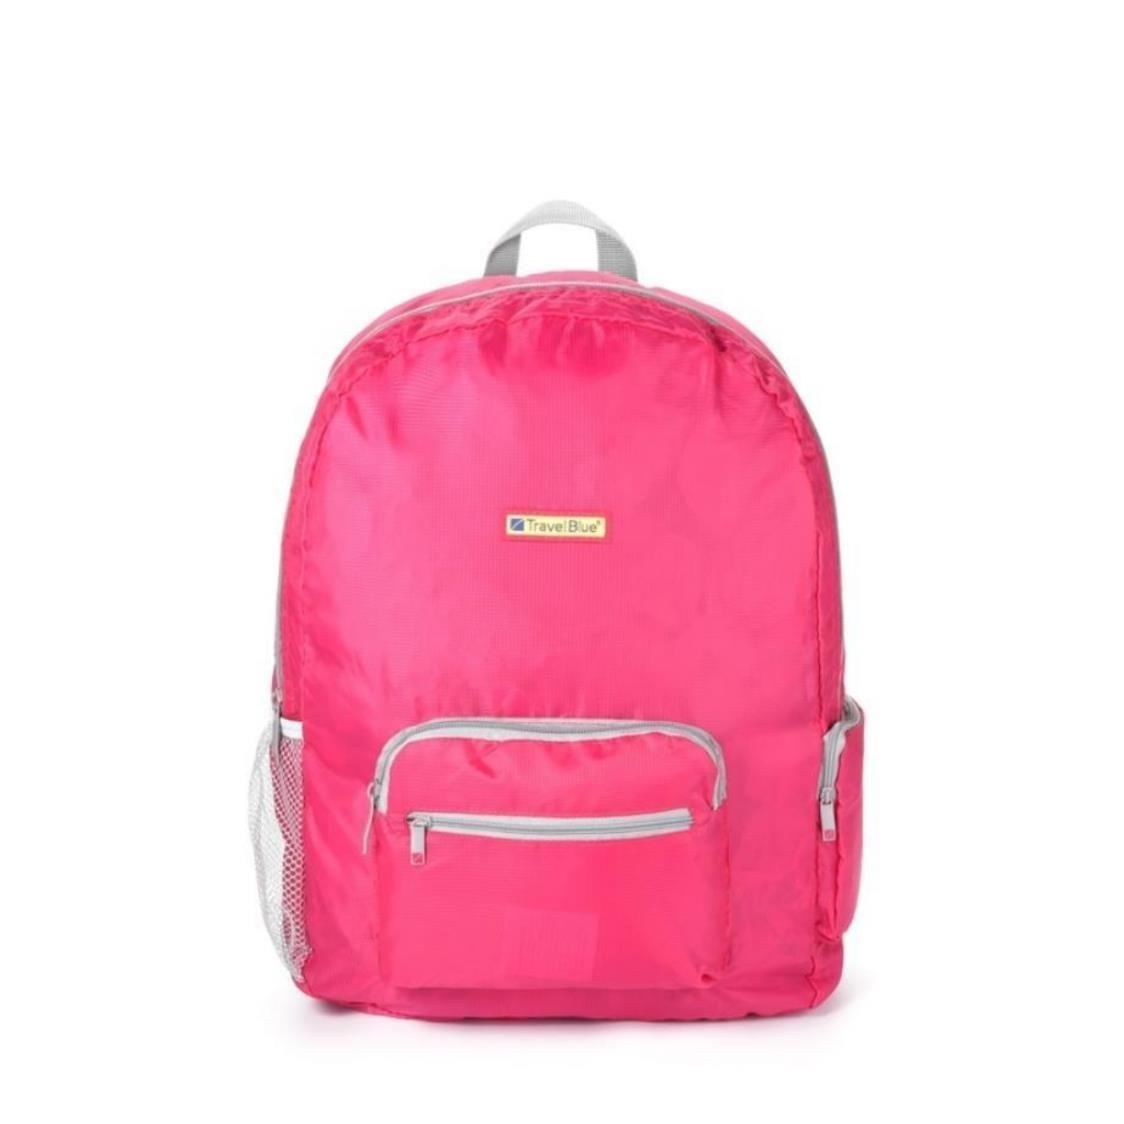 065 Foldable Backpack 20L Pink